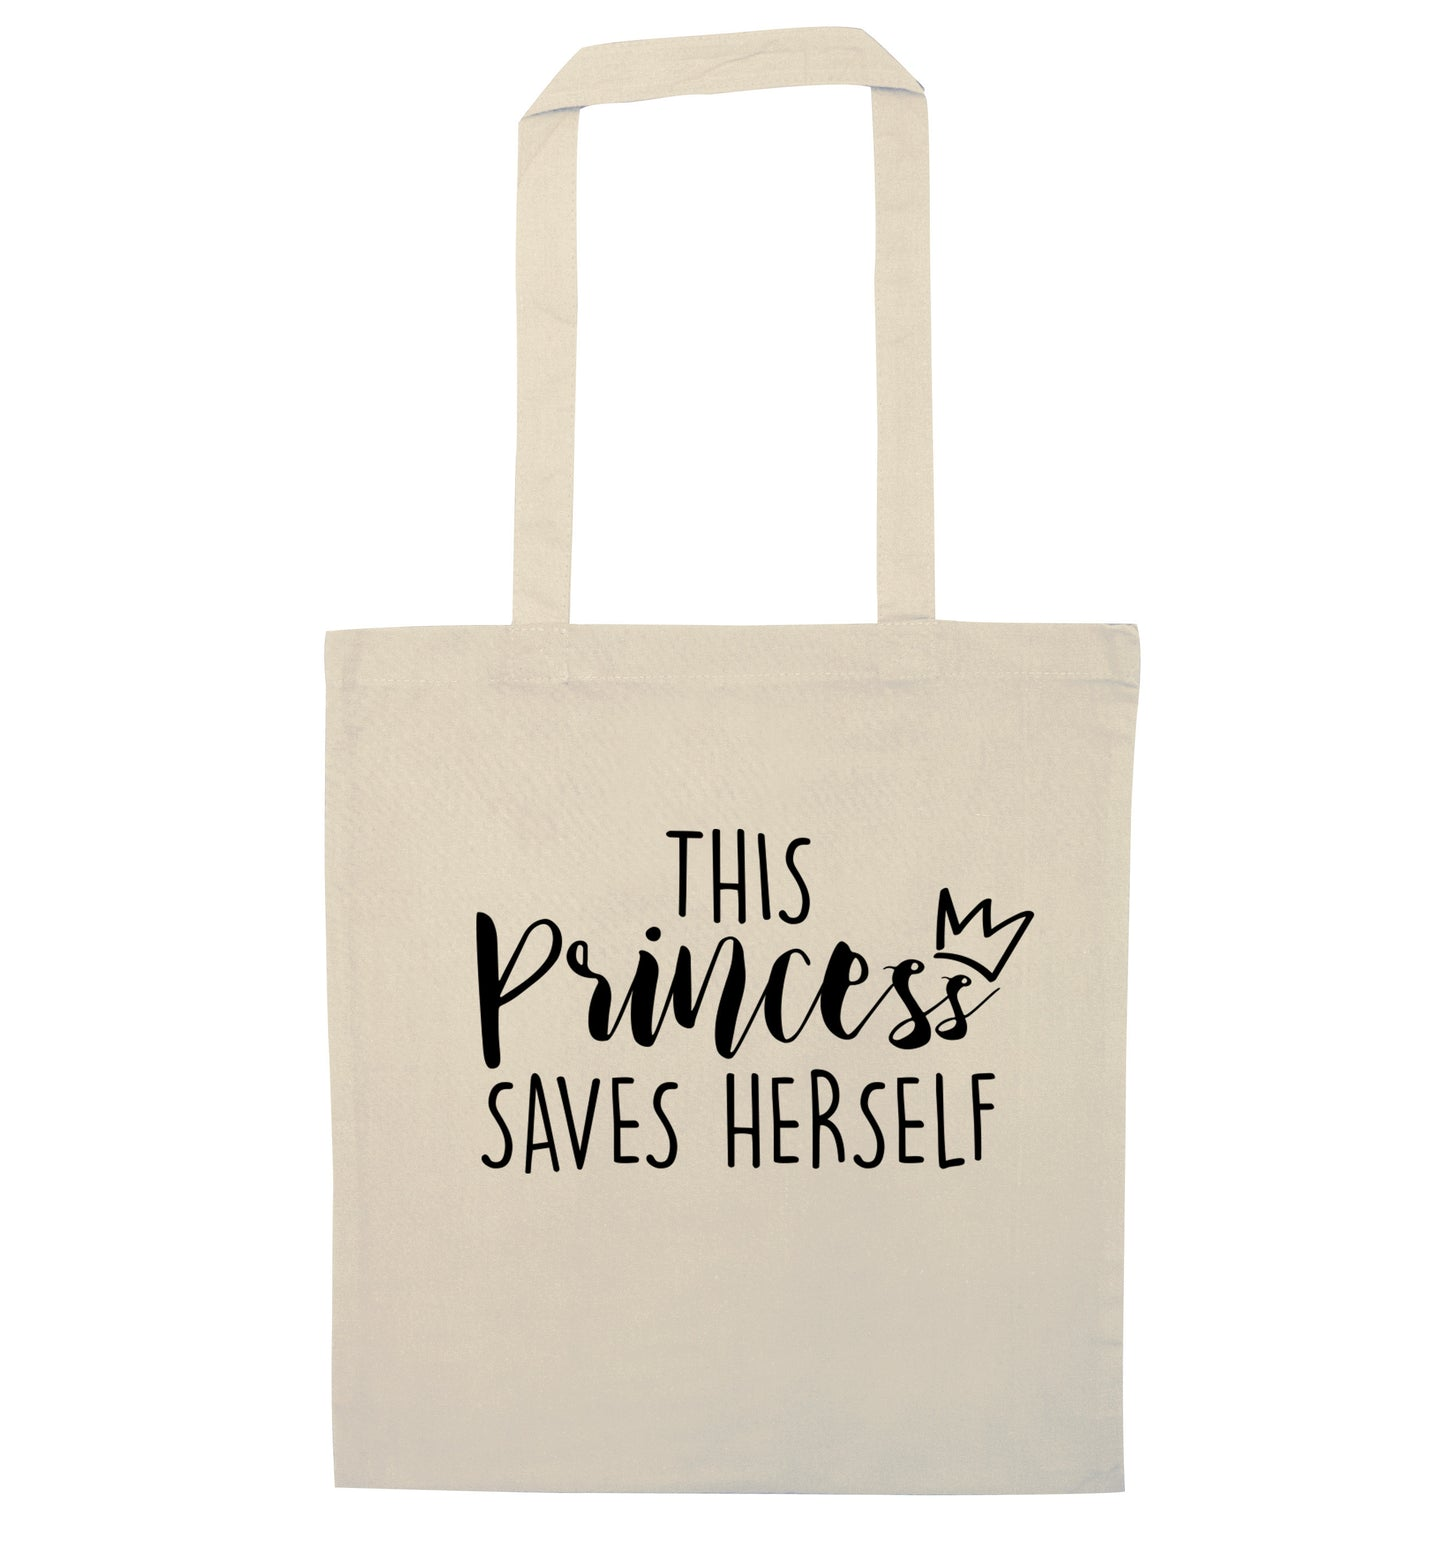 This princess saves herself natural tote bag